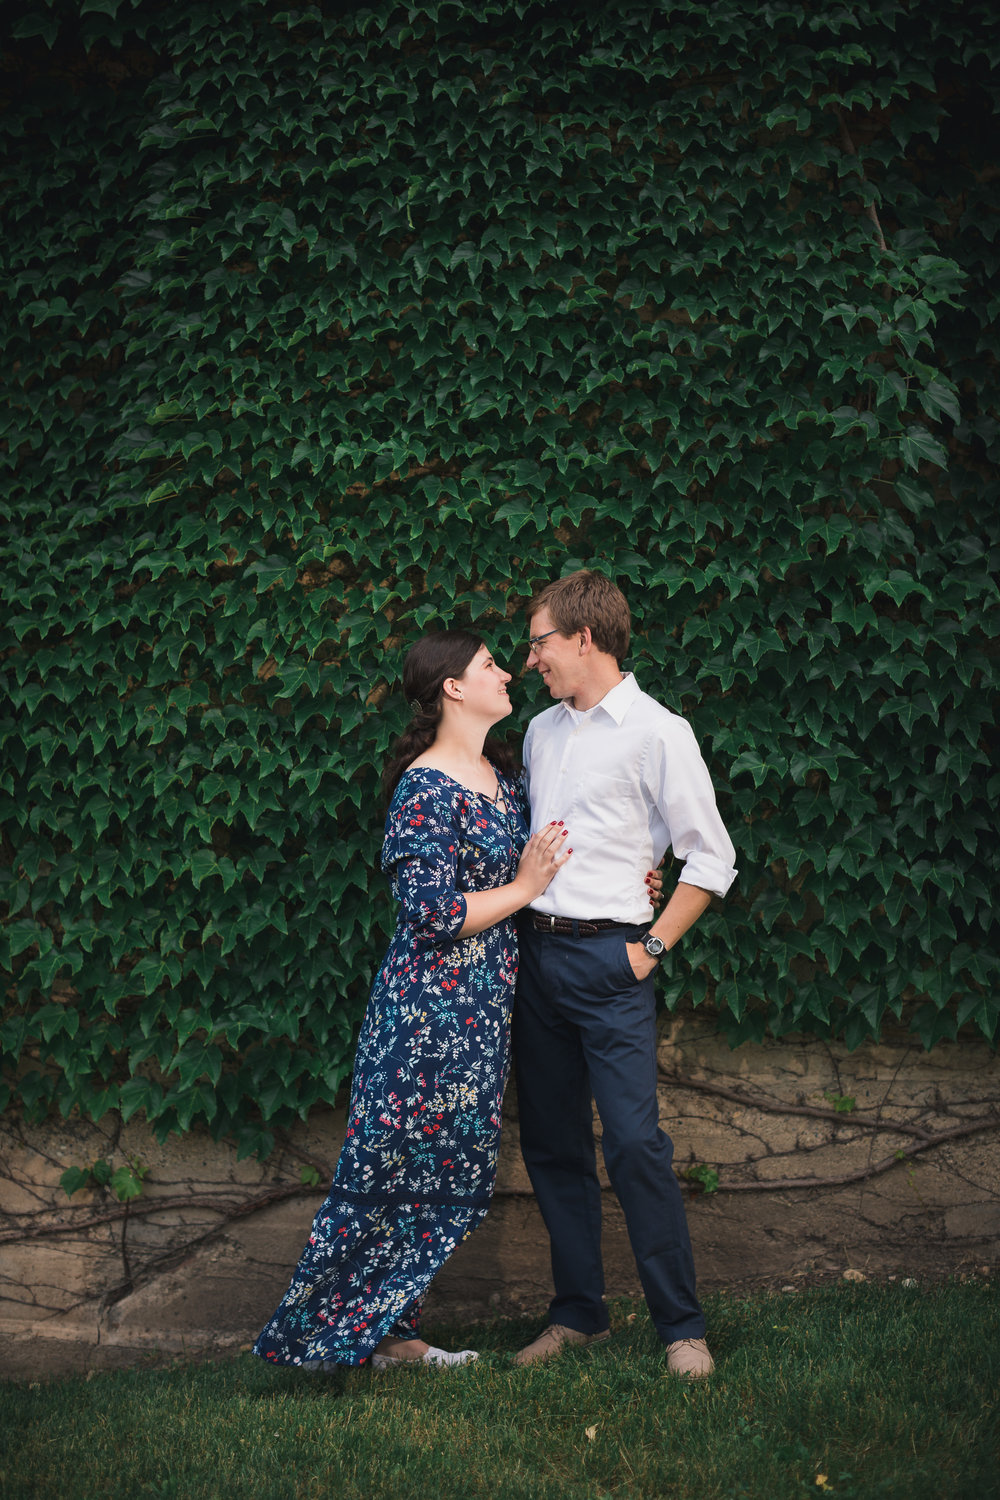 20180620_leslie_and_grant_engagement_38_5R3A0333.jpg